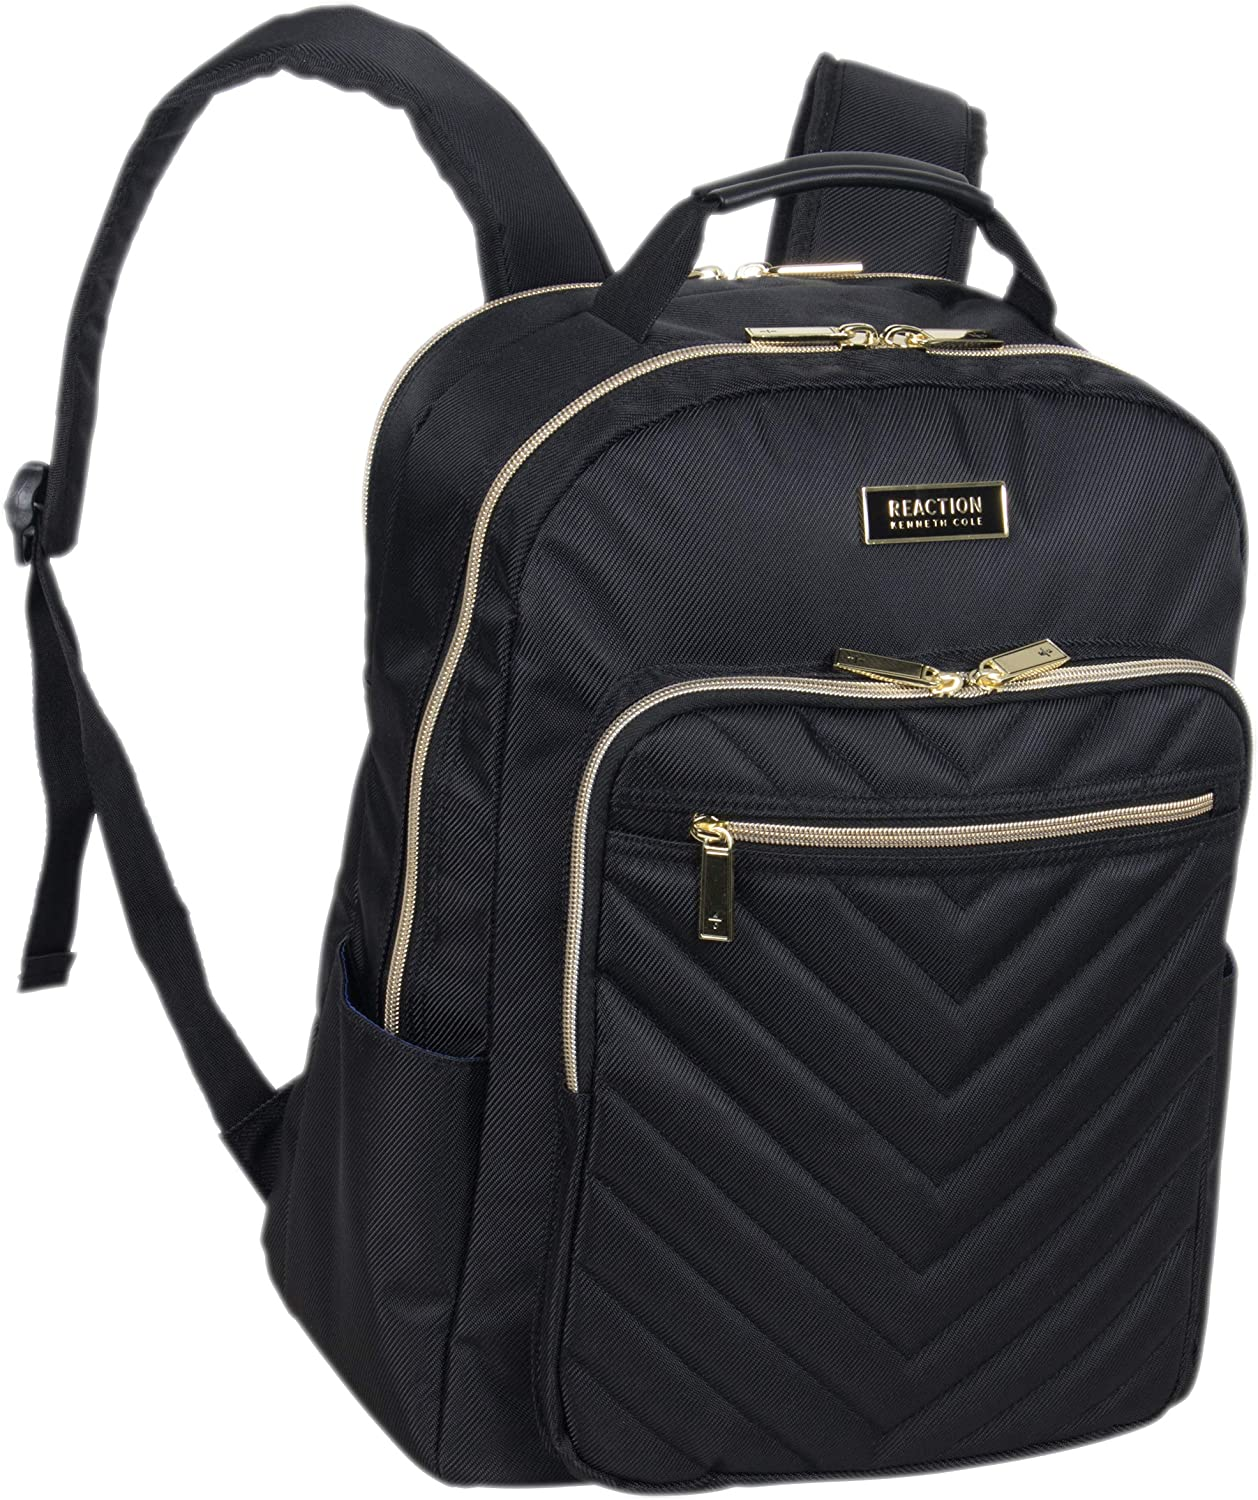 Best women's backpack for work with a laptop pocket